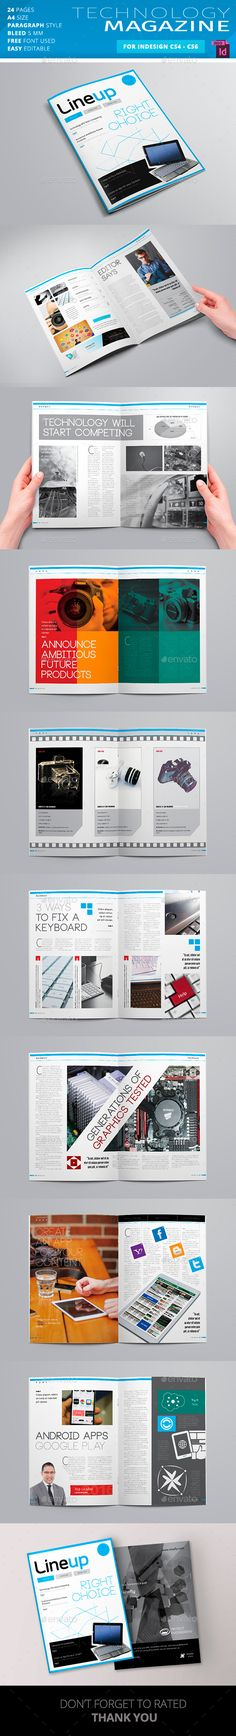 Lineup Technology Magazine Template — InDesign INDD #editable #techonolgy • Available here → https://graphicriver.net/item/lineup-technology-magazine-template/17147325?ref=pxcr